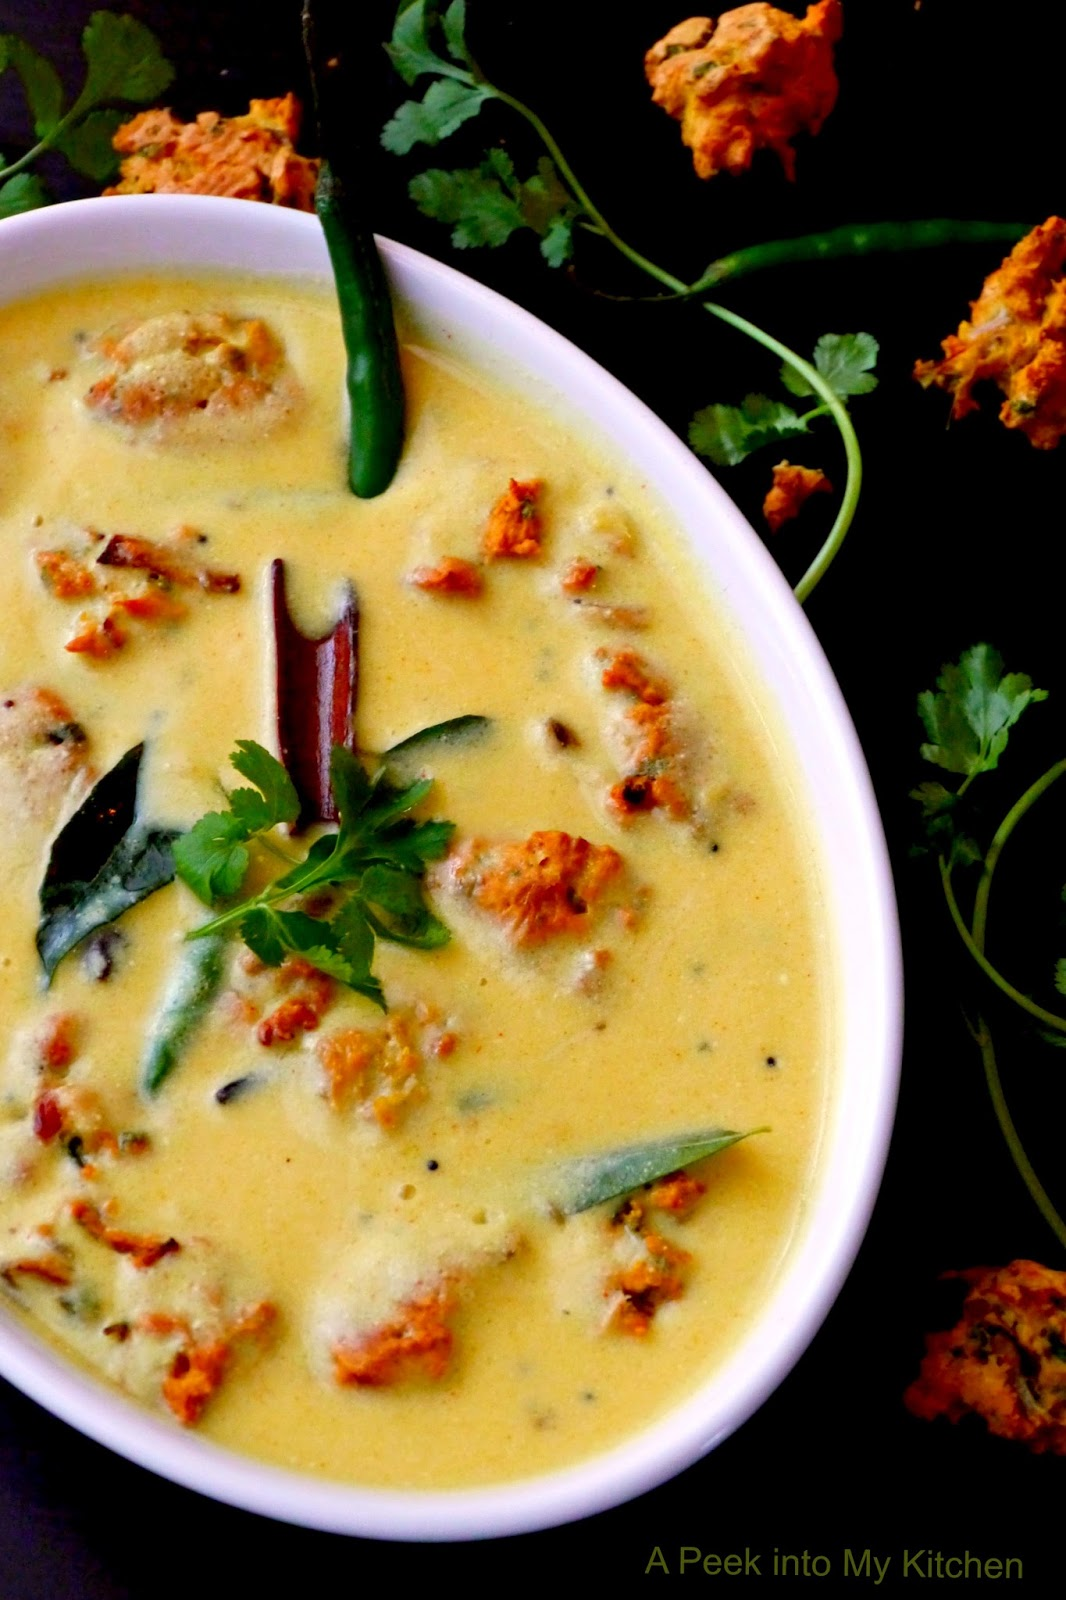 A peek into my kitchen kadhi pakora baked version spiced yogurt kadhi pakora baked version spiced yogurt soup with chickpea dumplings day 32 forumfinder Image collections